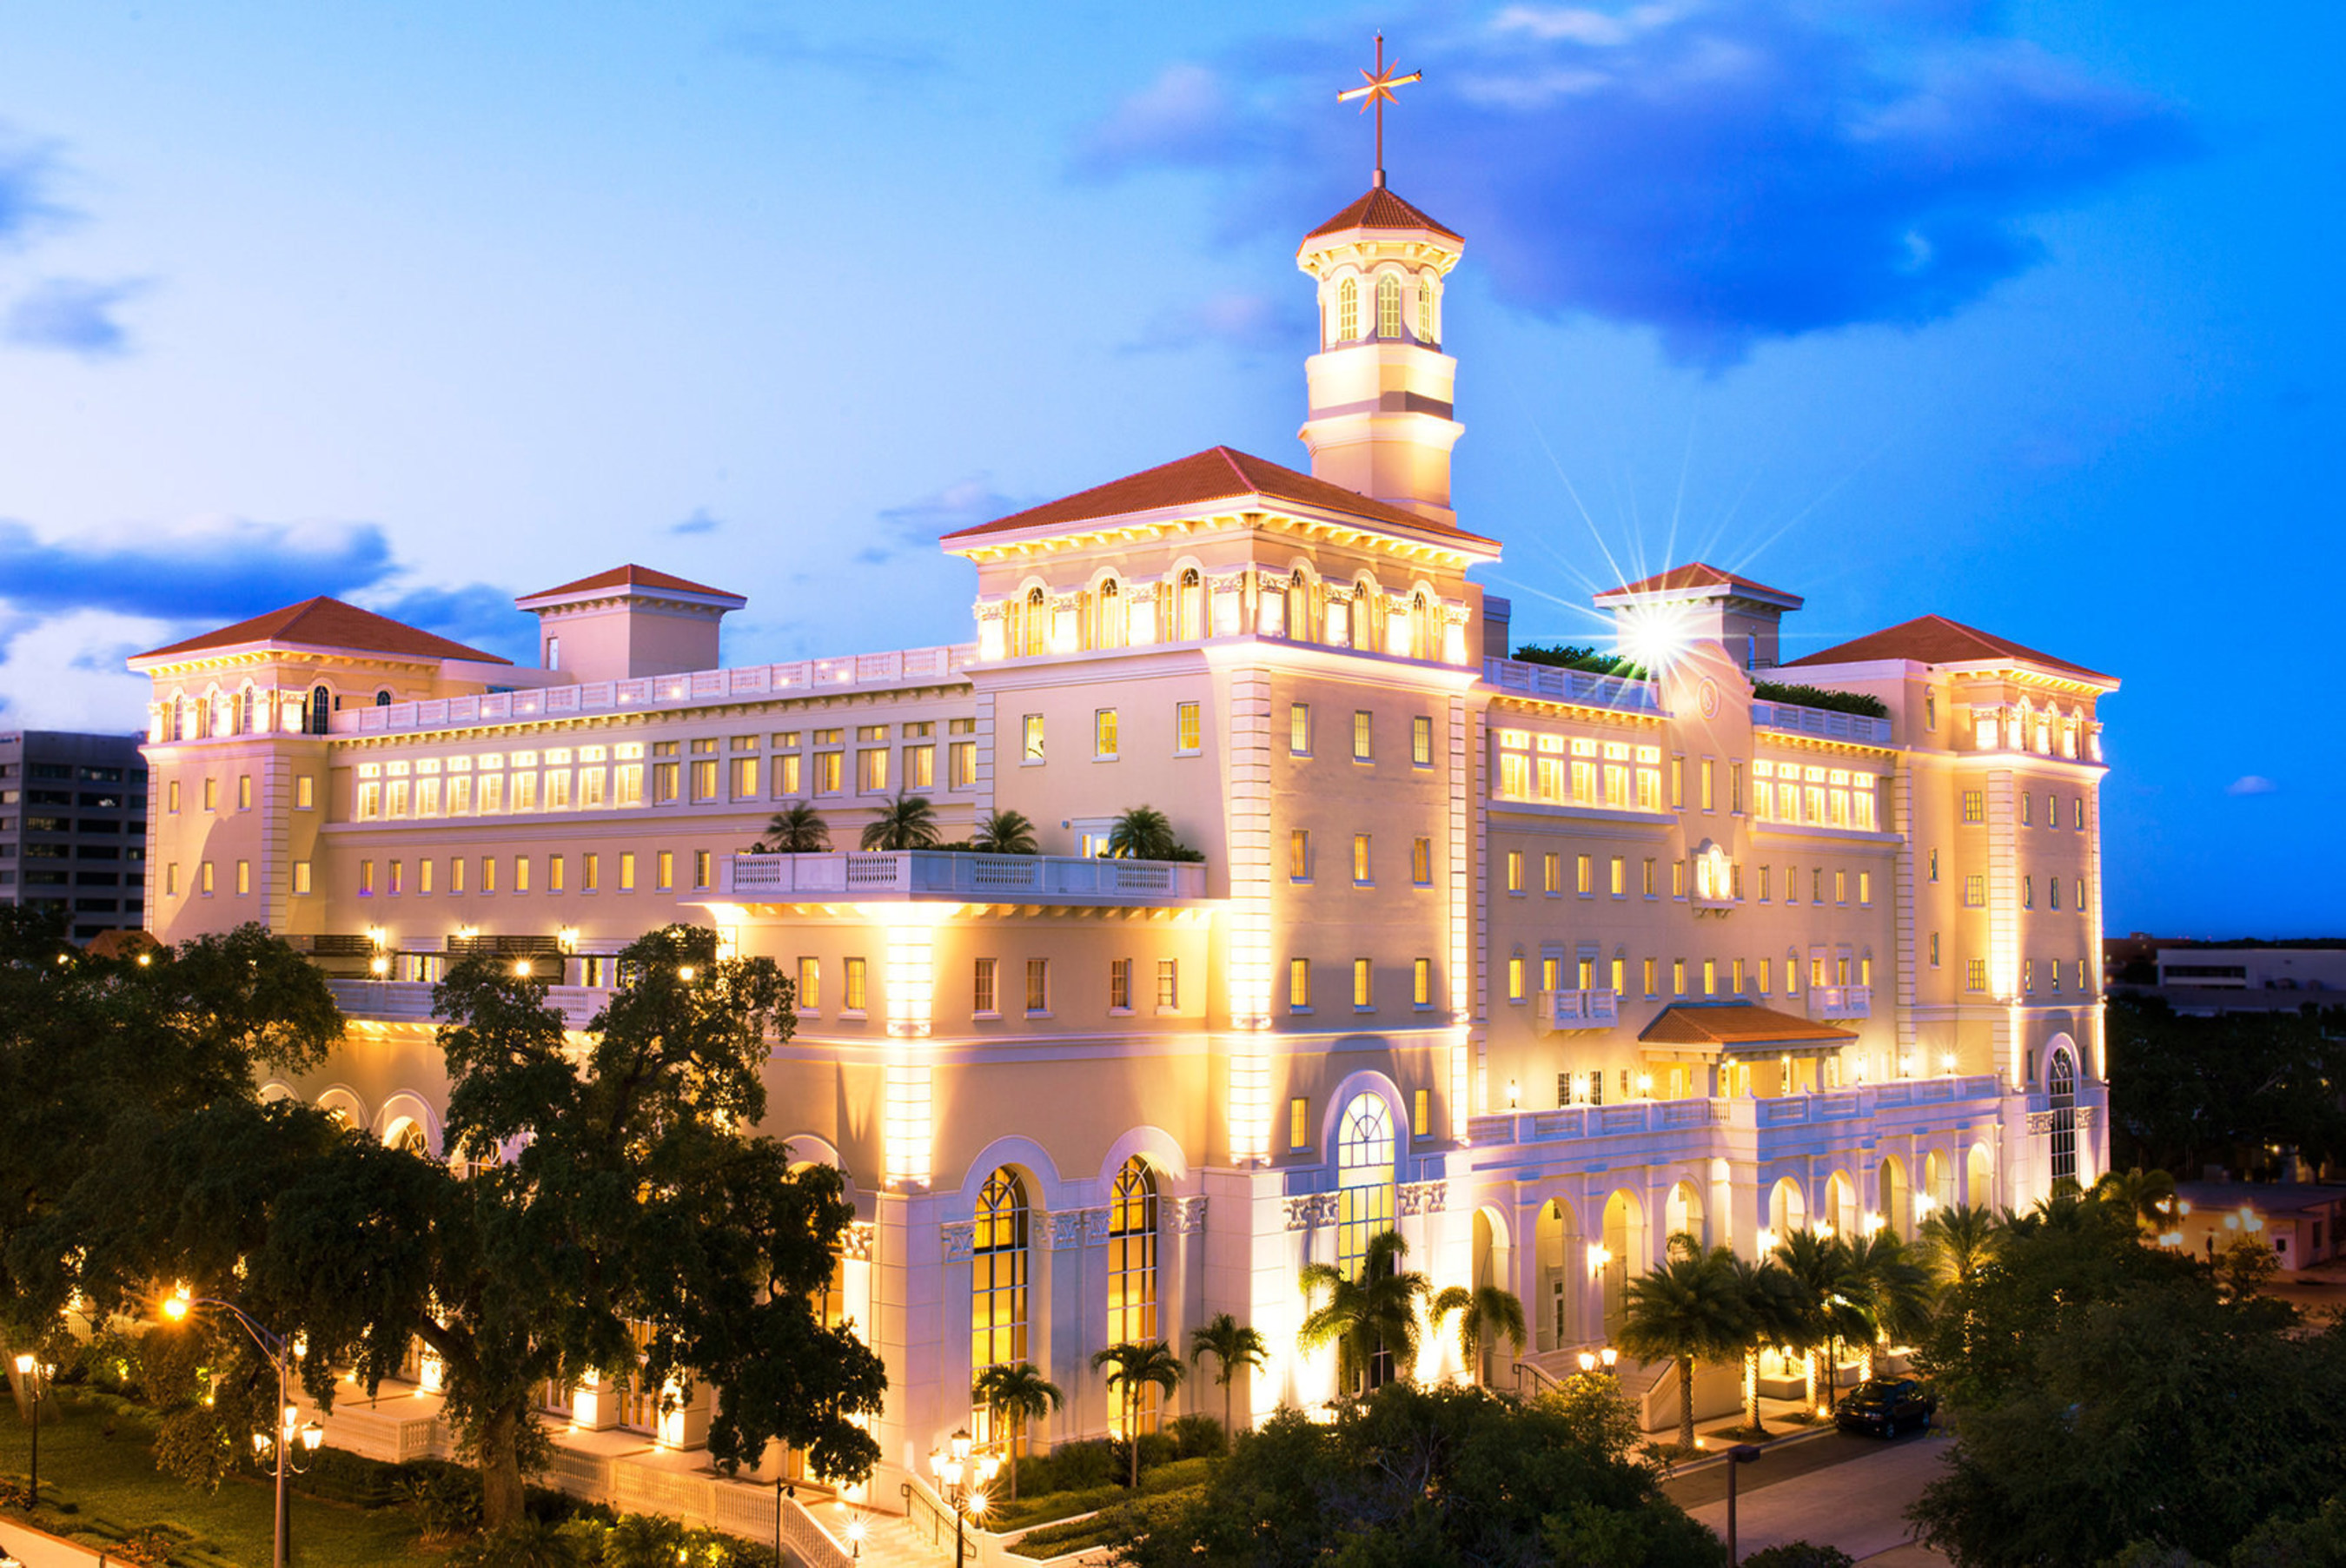 Church of Scientology Celebrates a Decade of Expansion Under the Leadership of David Miscavige